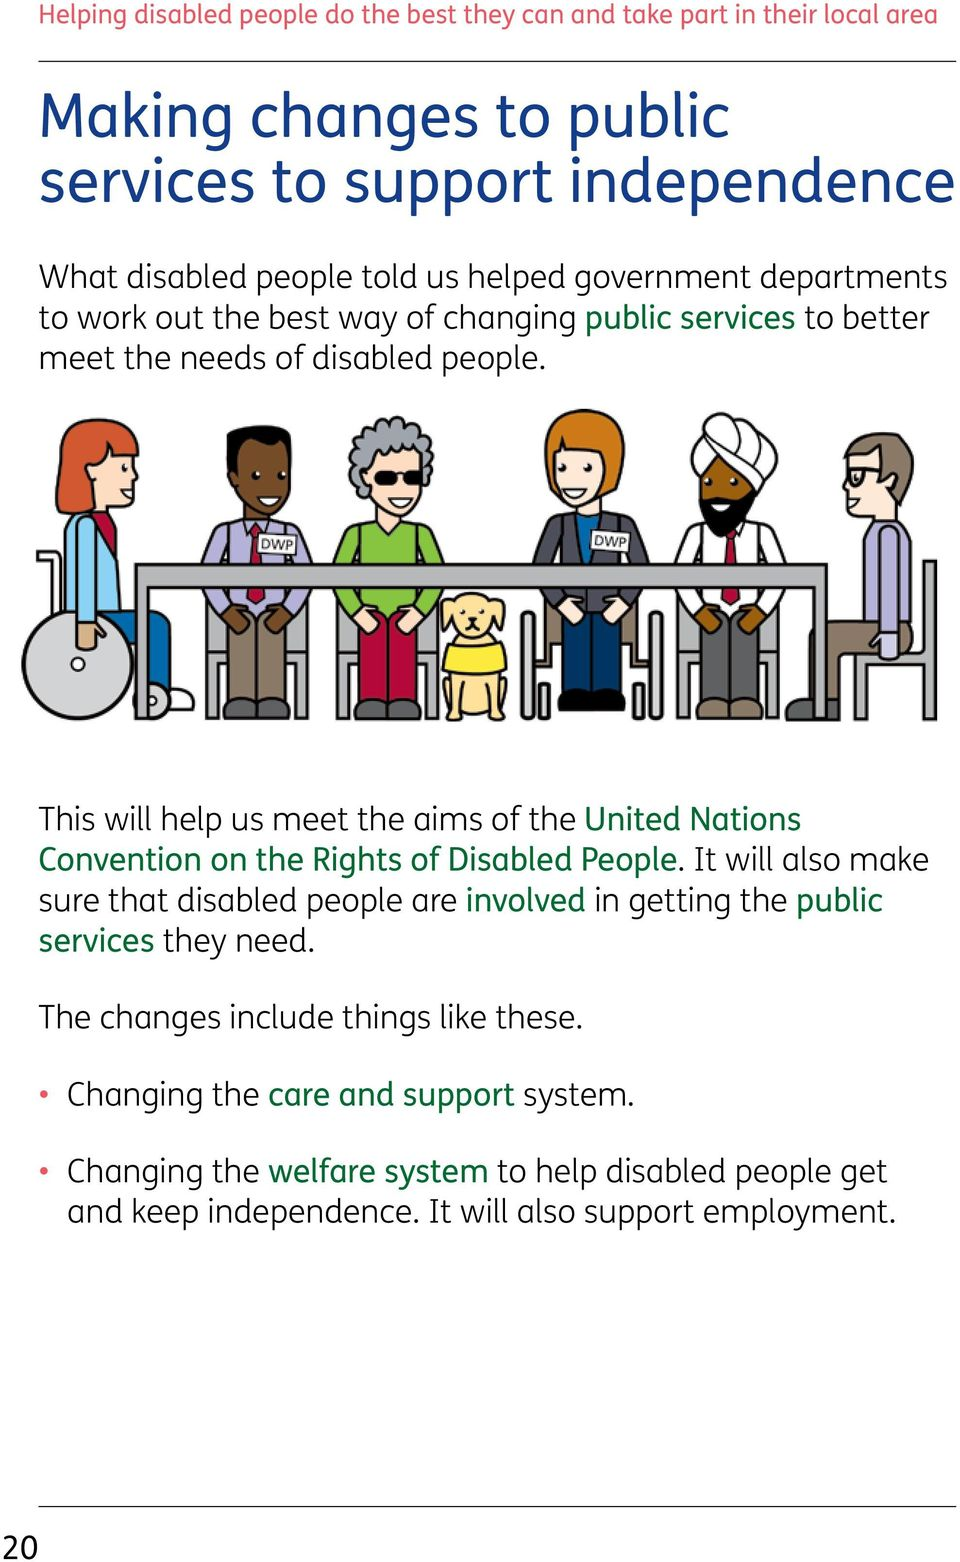 This will help us meet the aims of the United Nations Convention on the Rights of Disabled People.